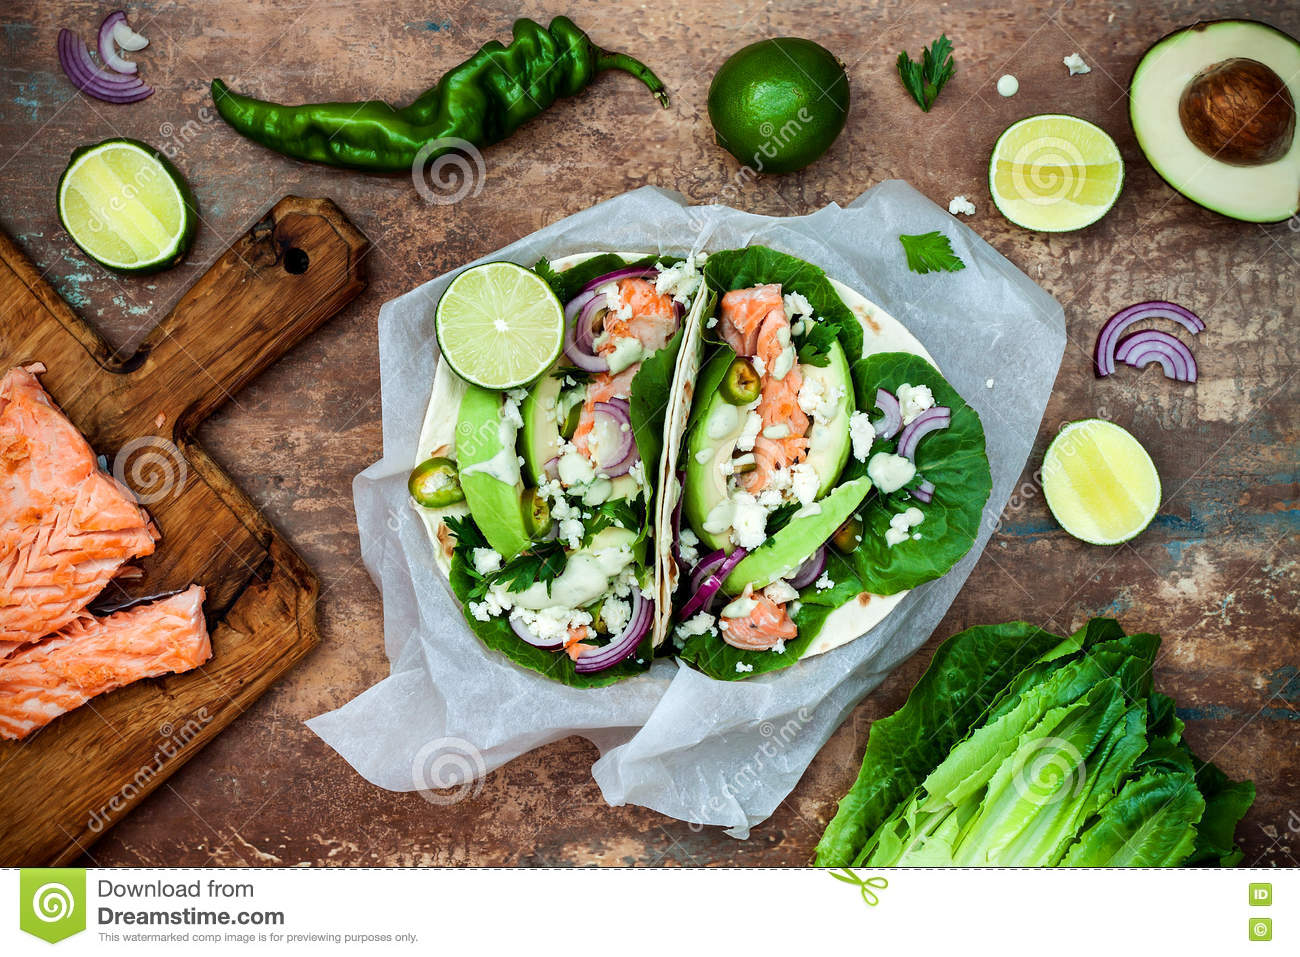 Preparing healthy lunch snacks. Fish tacos with grilled salmon, red onion, fresh salad leaves and avocado cilantro sauce